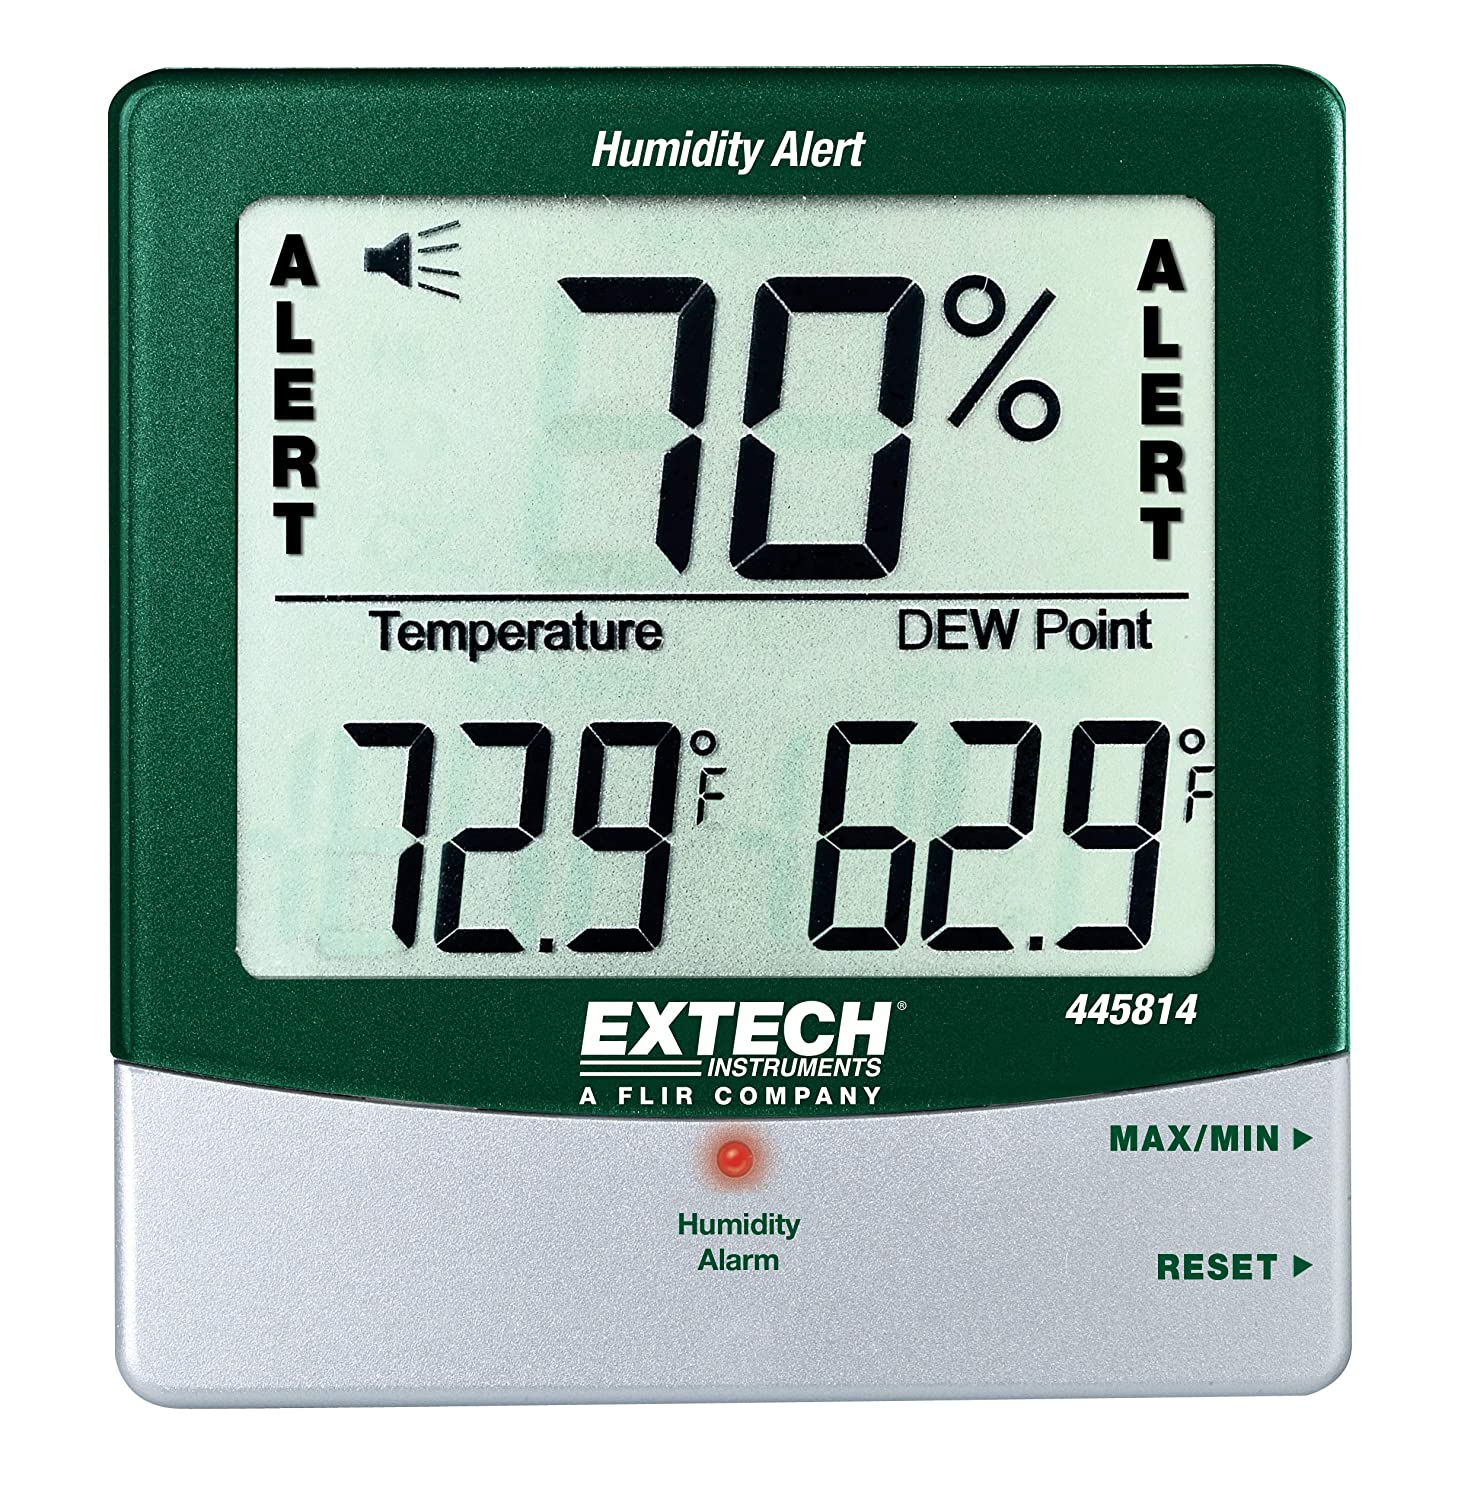 Extech 445814 Stationary Hygro Thermometer Psychrometer with Audible Humidity Alert Extech Instruments